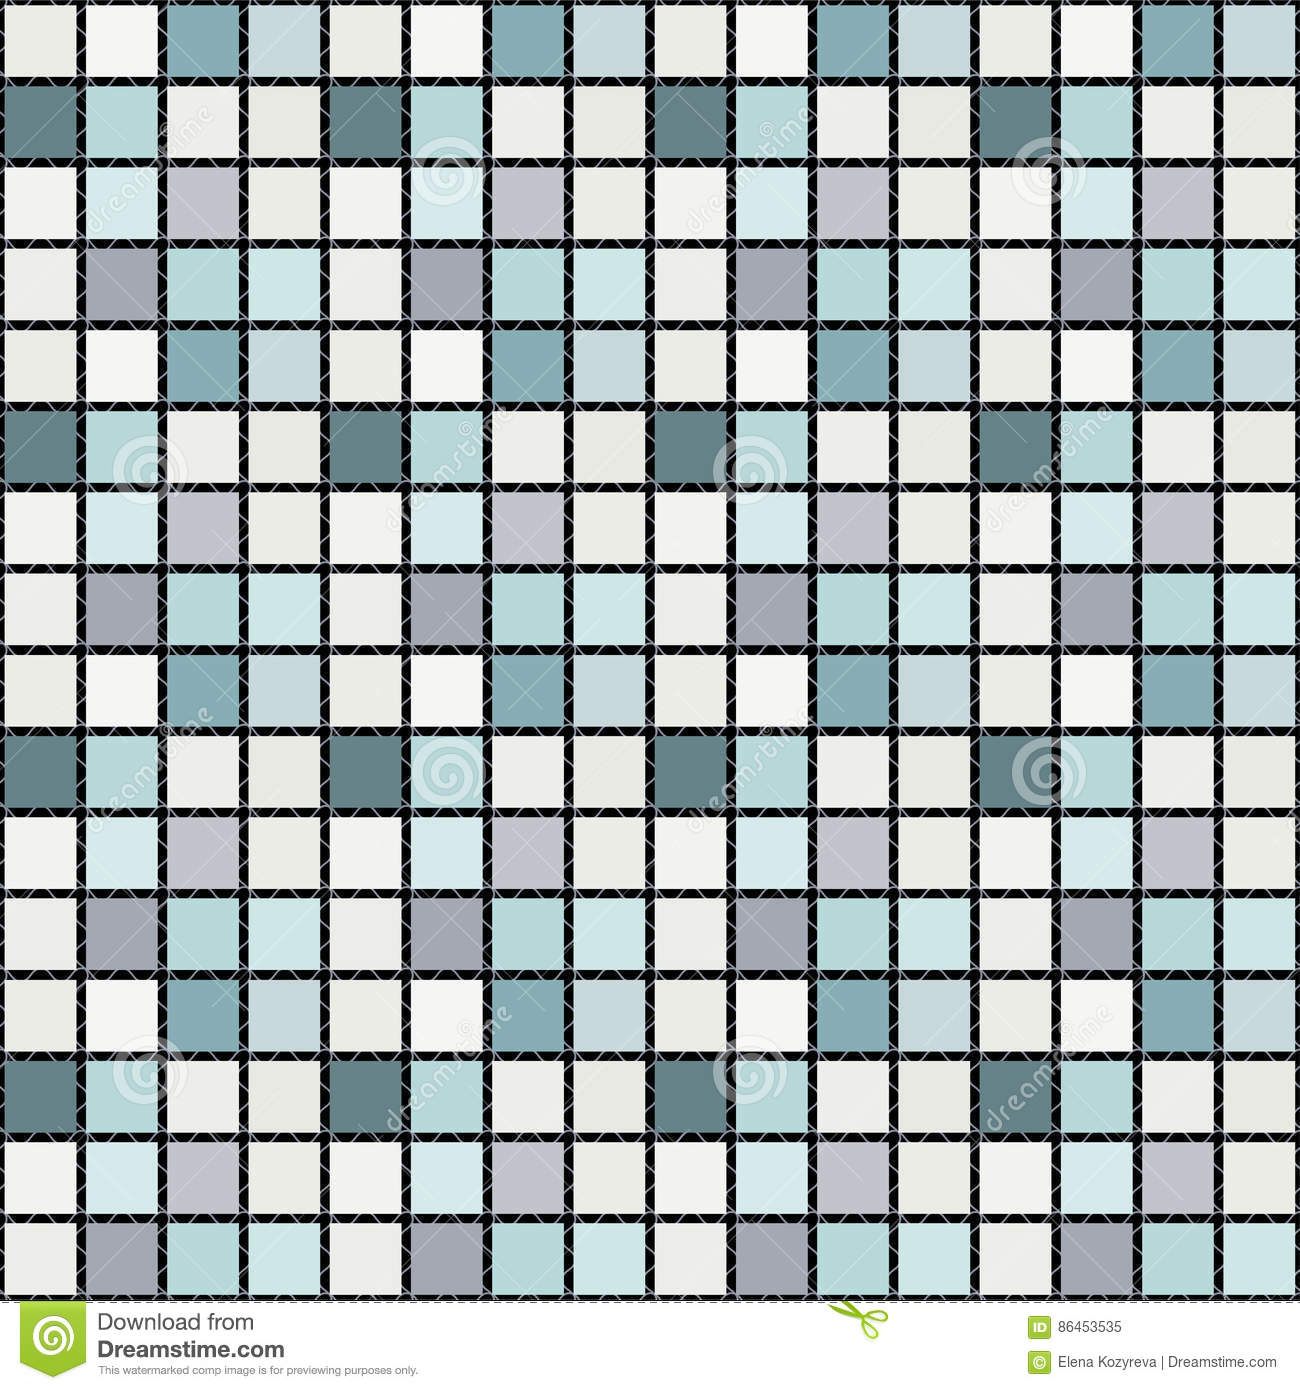 Bright Mosaic Seamless Pattern Background Square Tiles Stock Vector ...